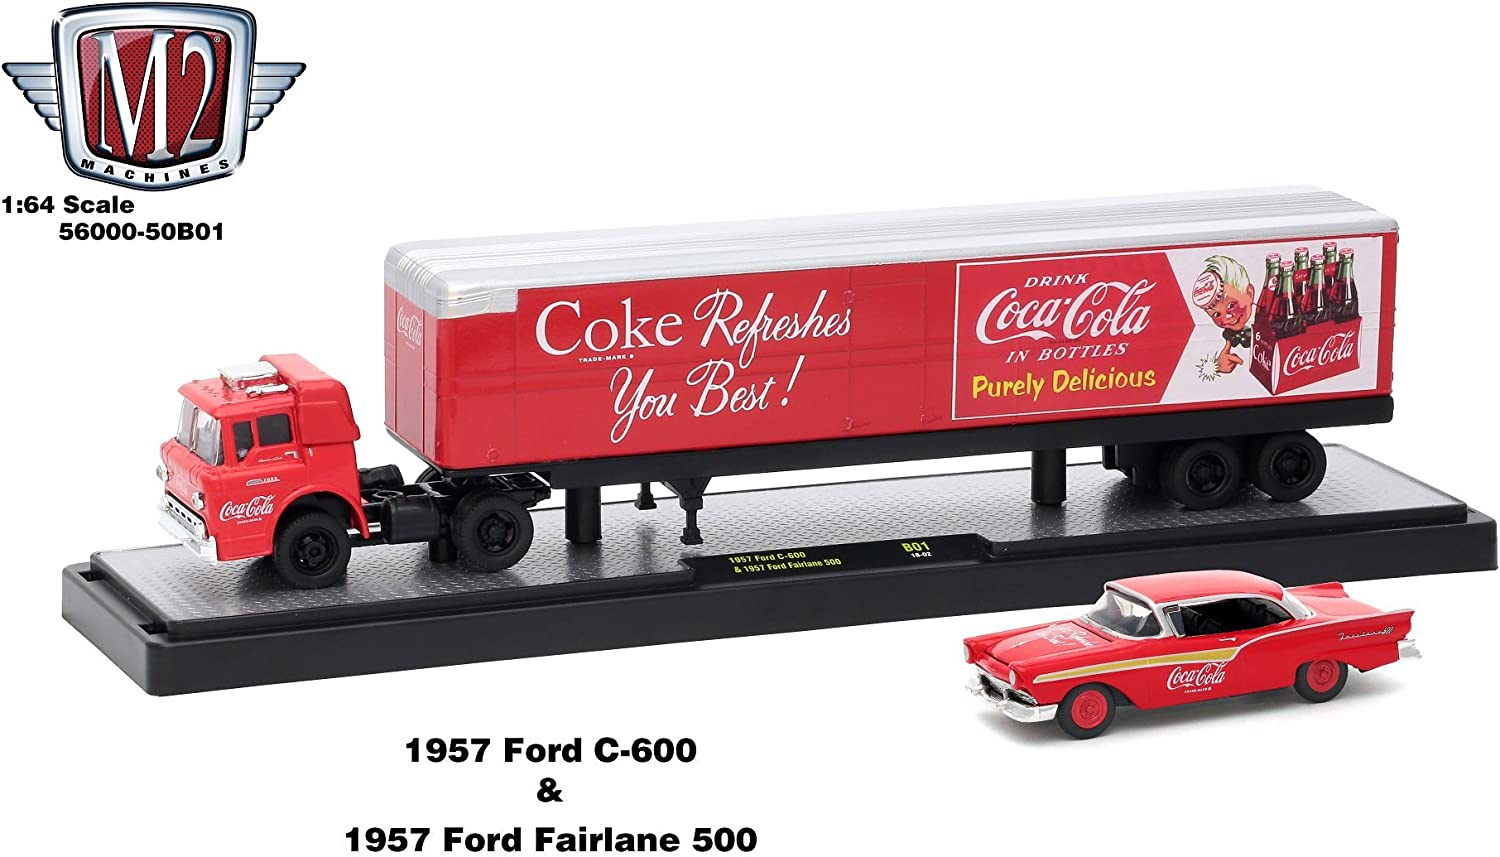 1956 FORD F100 PICKUP TRUCK COCA-COLA COKE RARE 1:64 SCALE DIECAST MODEL CAR